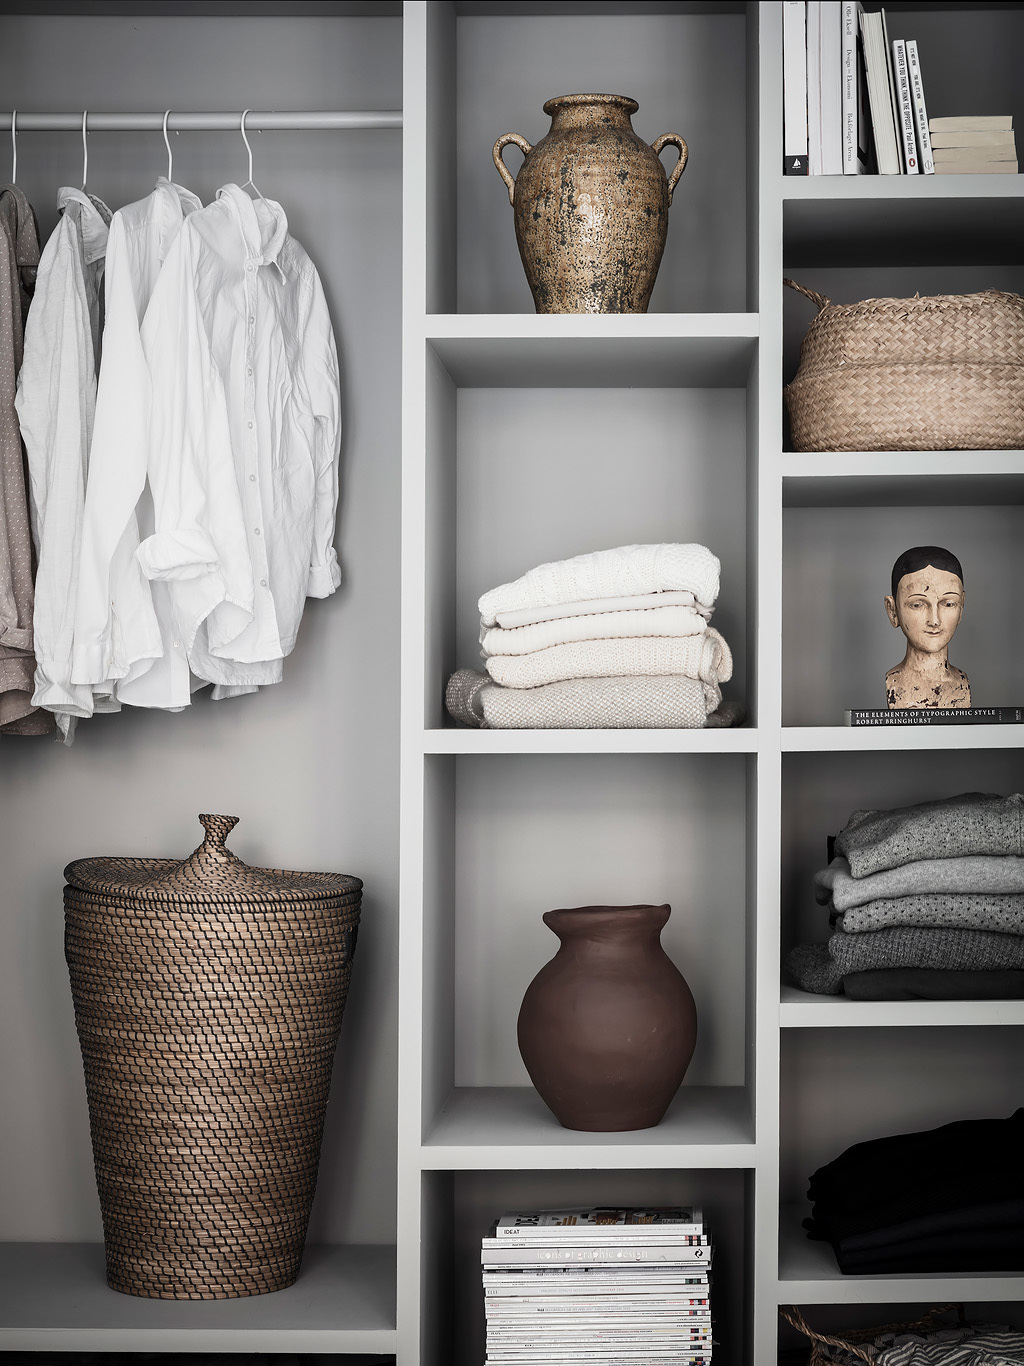 Display art among your clothing to create a lux feel.